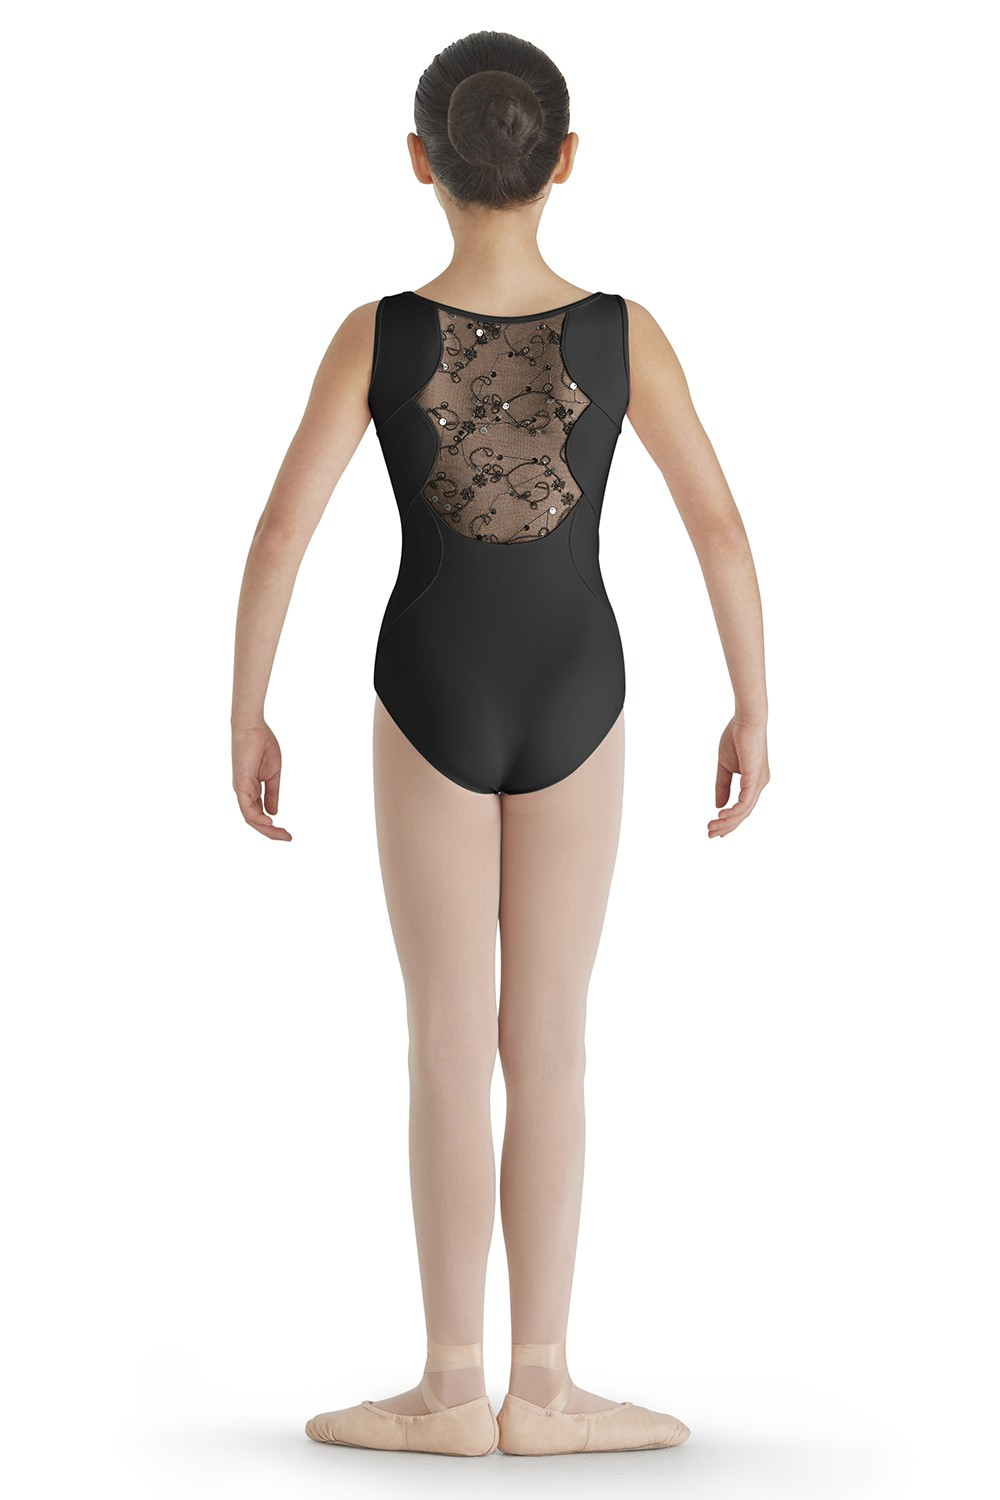 Cayden Children's Dance Leotards